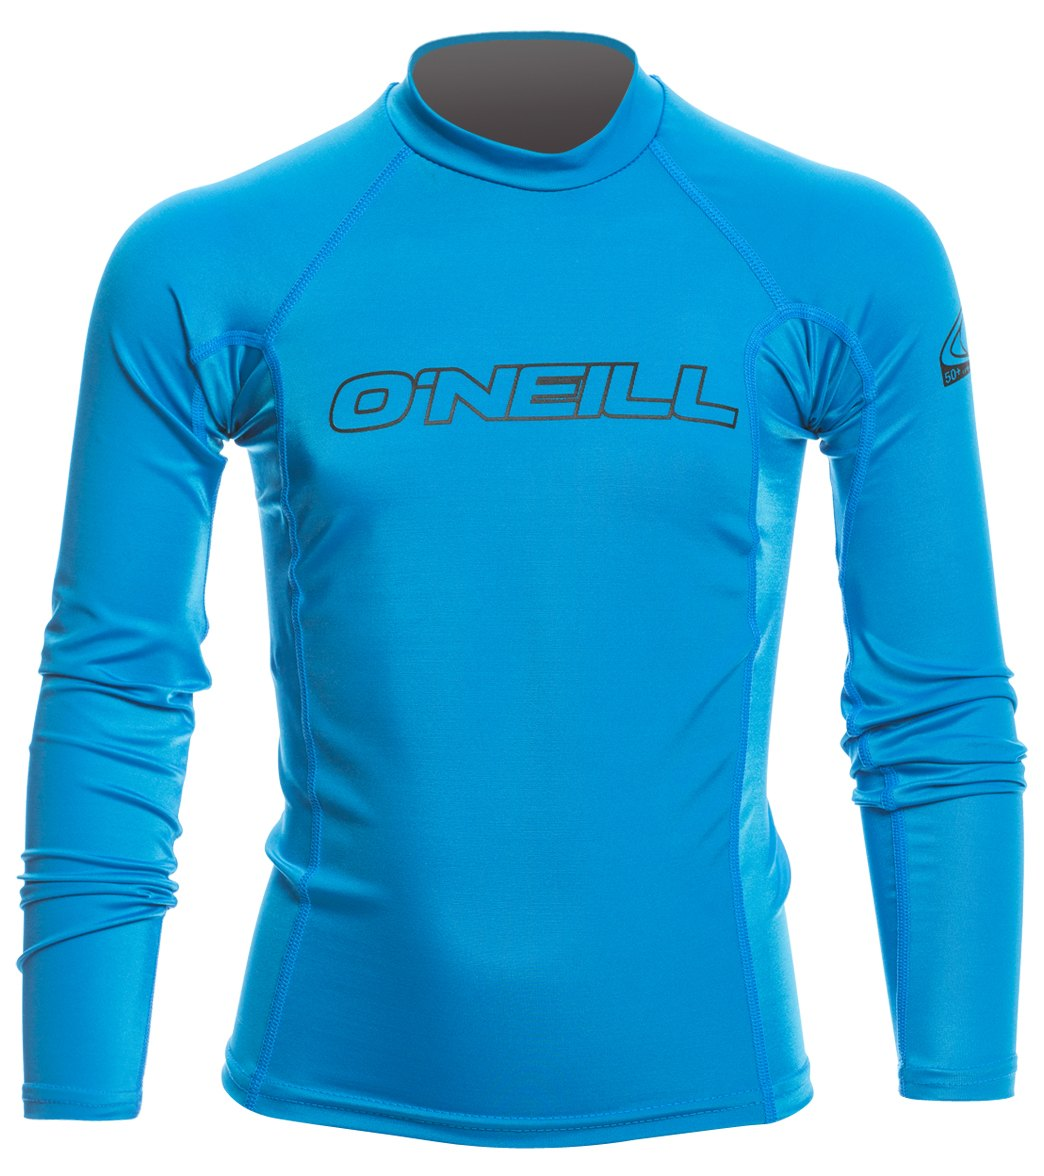 6211058083 O'Neill Youth Basic Skins Long Sleeve Crew Rashguard